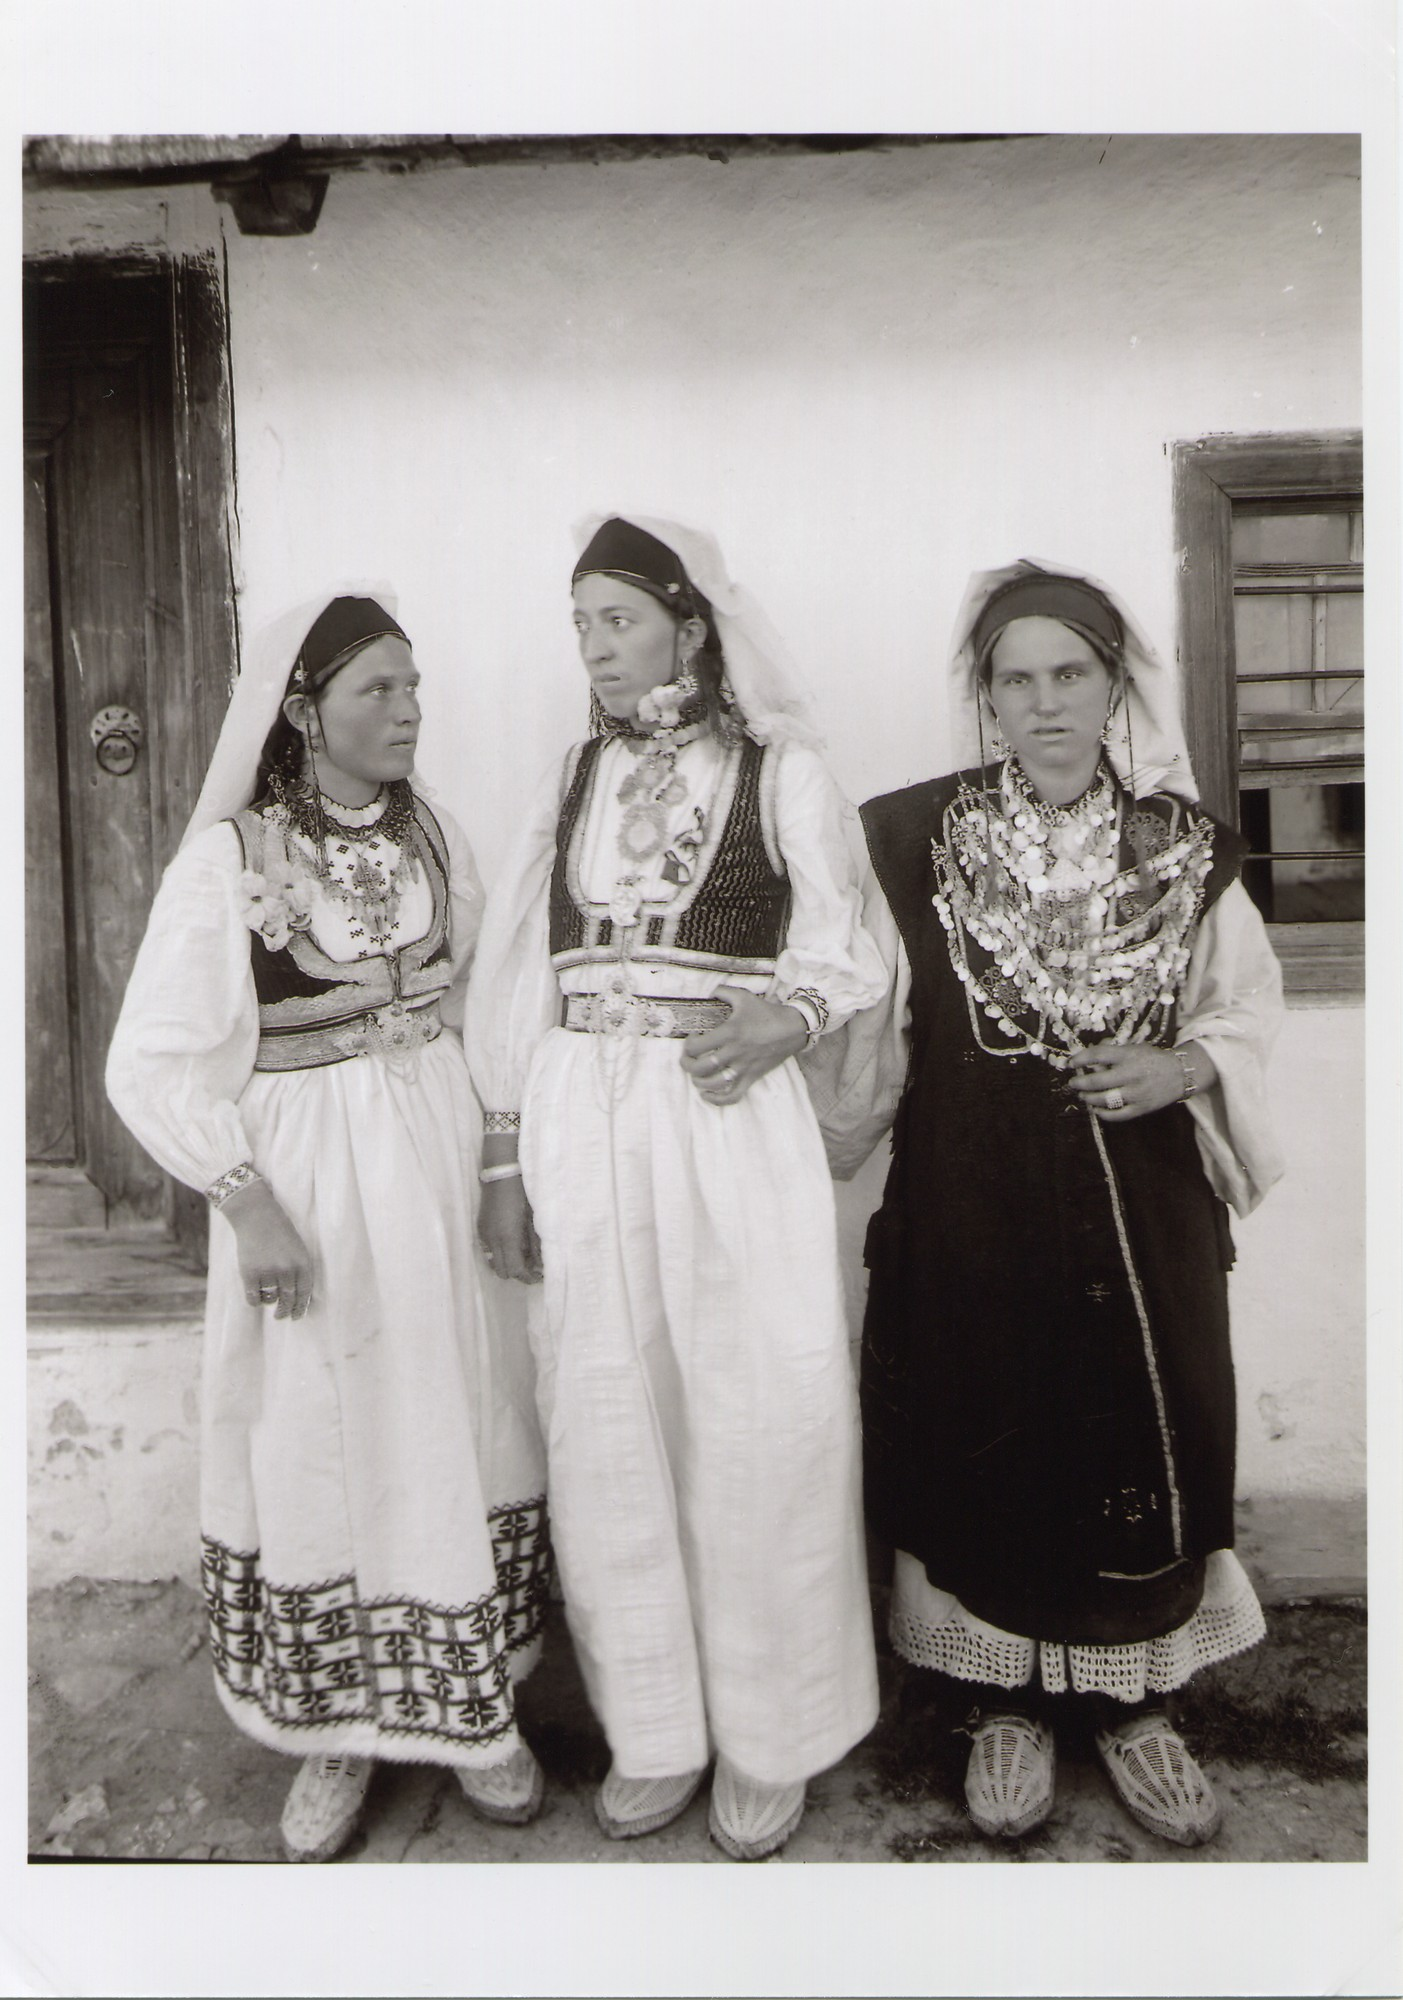 Outdoor-portrait of three young women in traditional costumes from Herzegovina, © The National Museum of Bosnia and Herzegovina